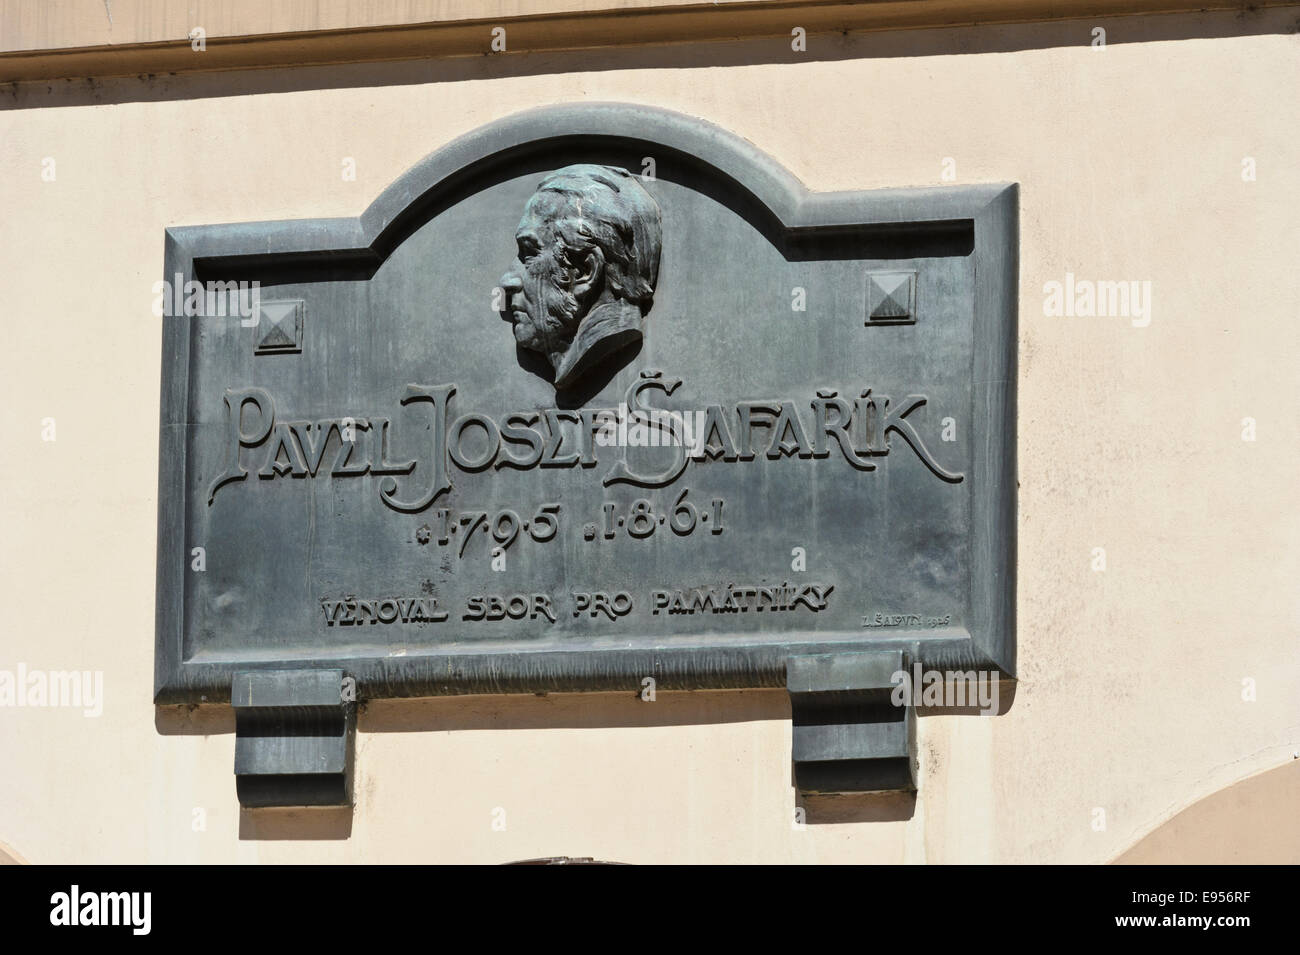 A commemorative plaque of Pavel Josef Safarik on the wall of a building in the City of Prague, Czech Republic. - Stock Image